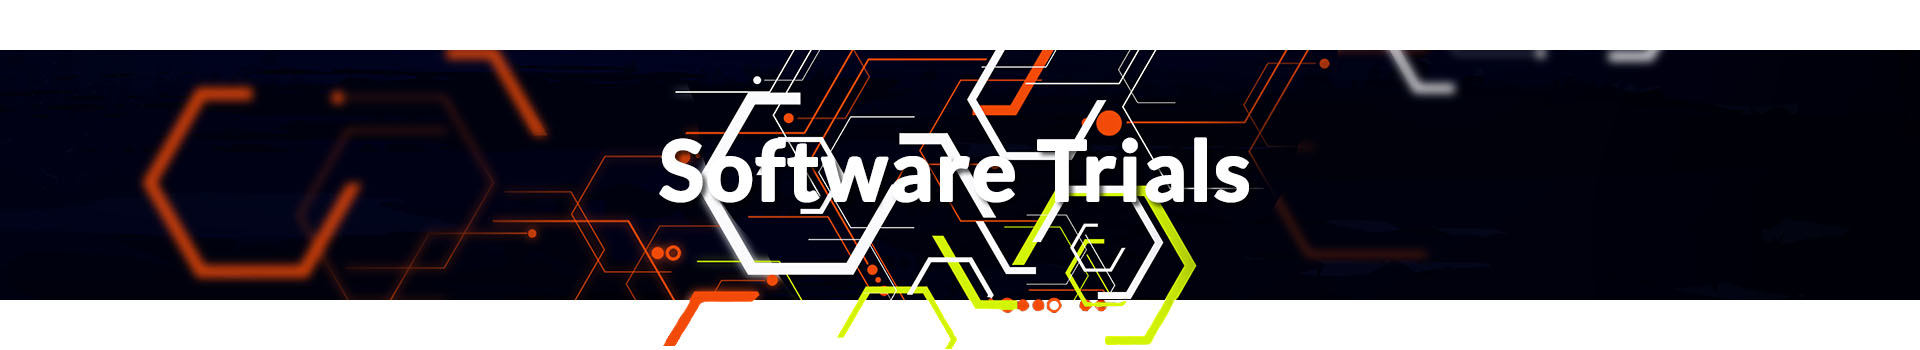 software trials